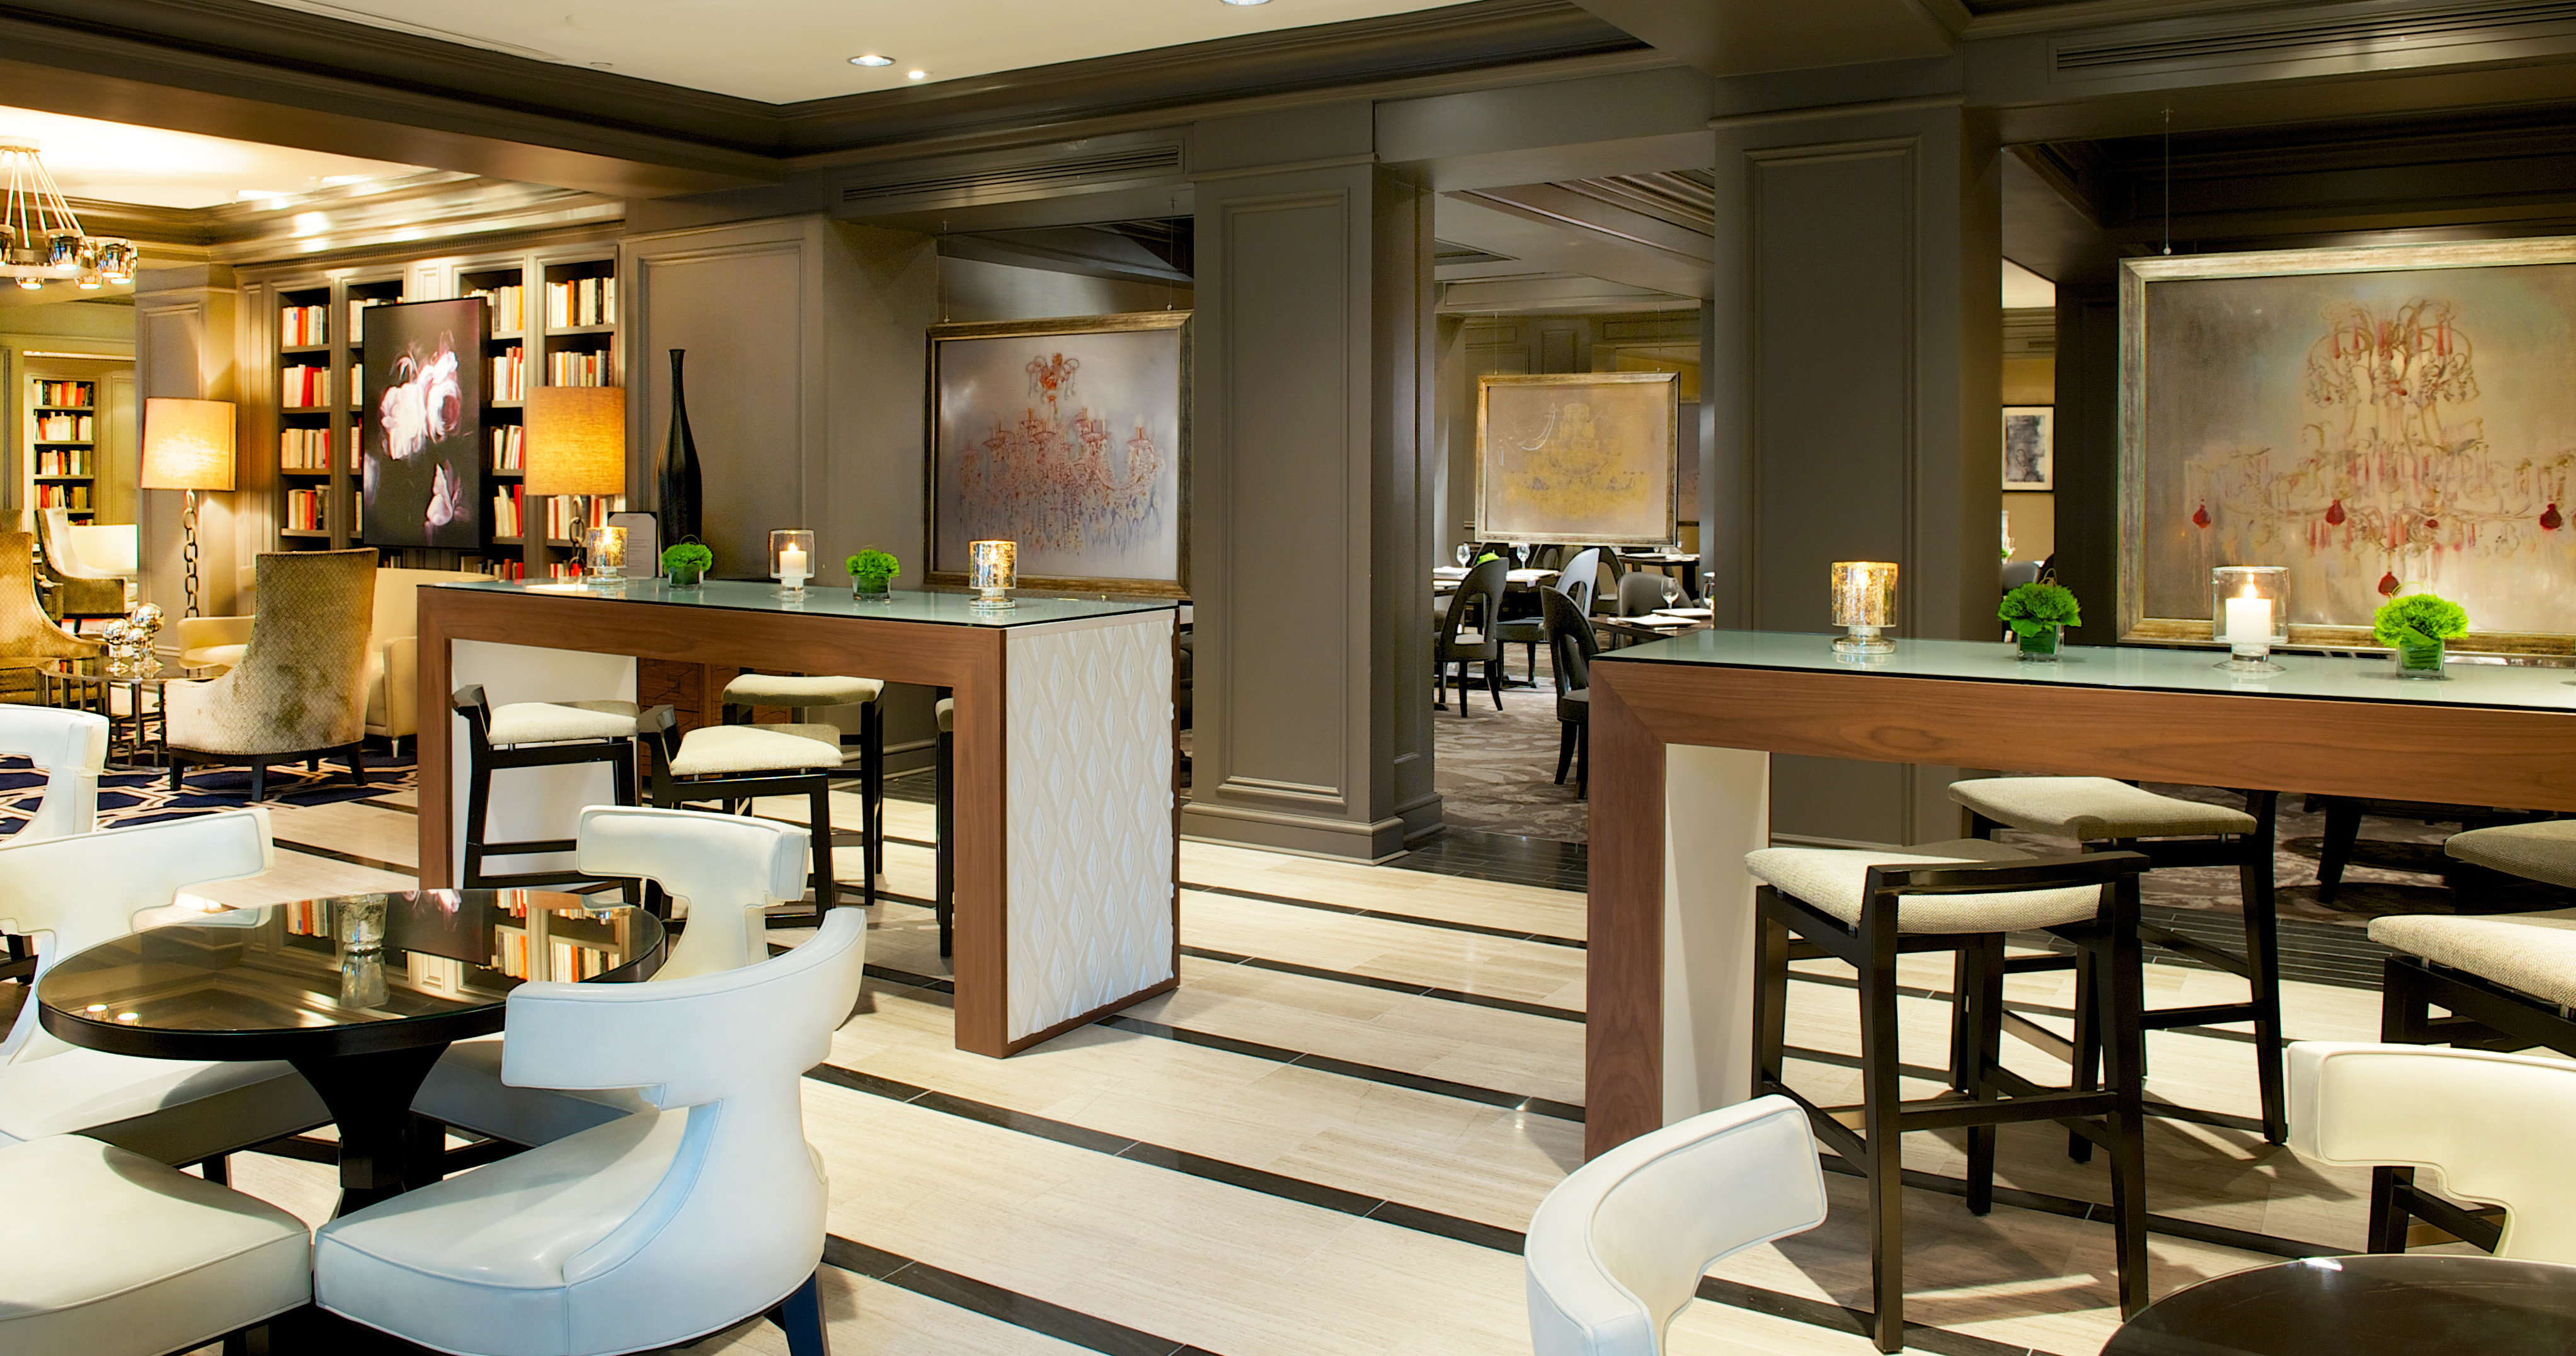 Bar Boutique Budget City Dining Drink Eat Hotels Lounge Modern property restaurant lighting home cuisine condominium Lobby Resort living room dining table